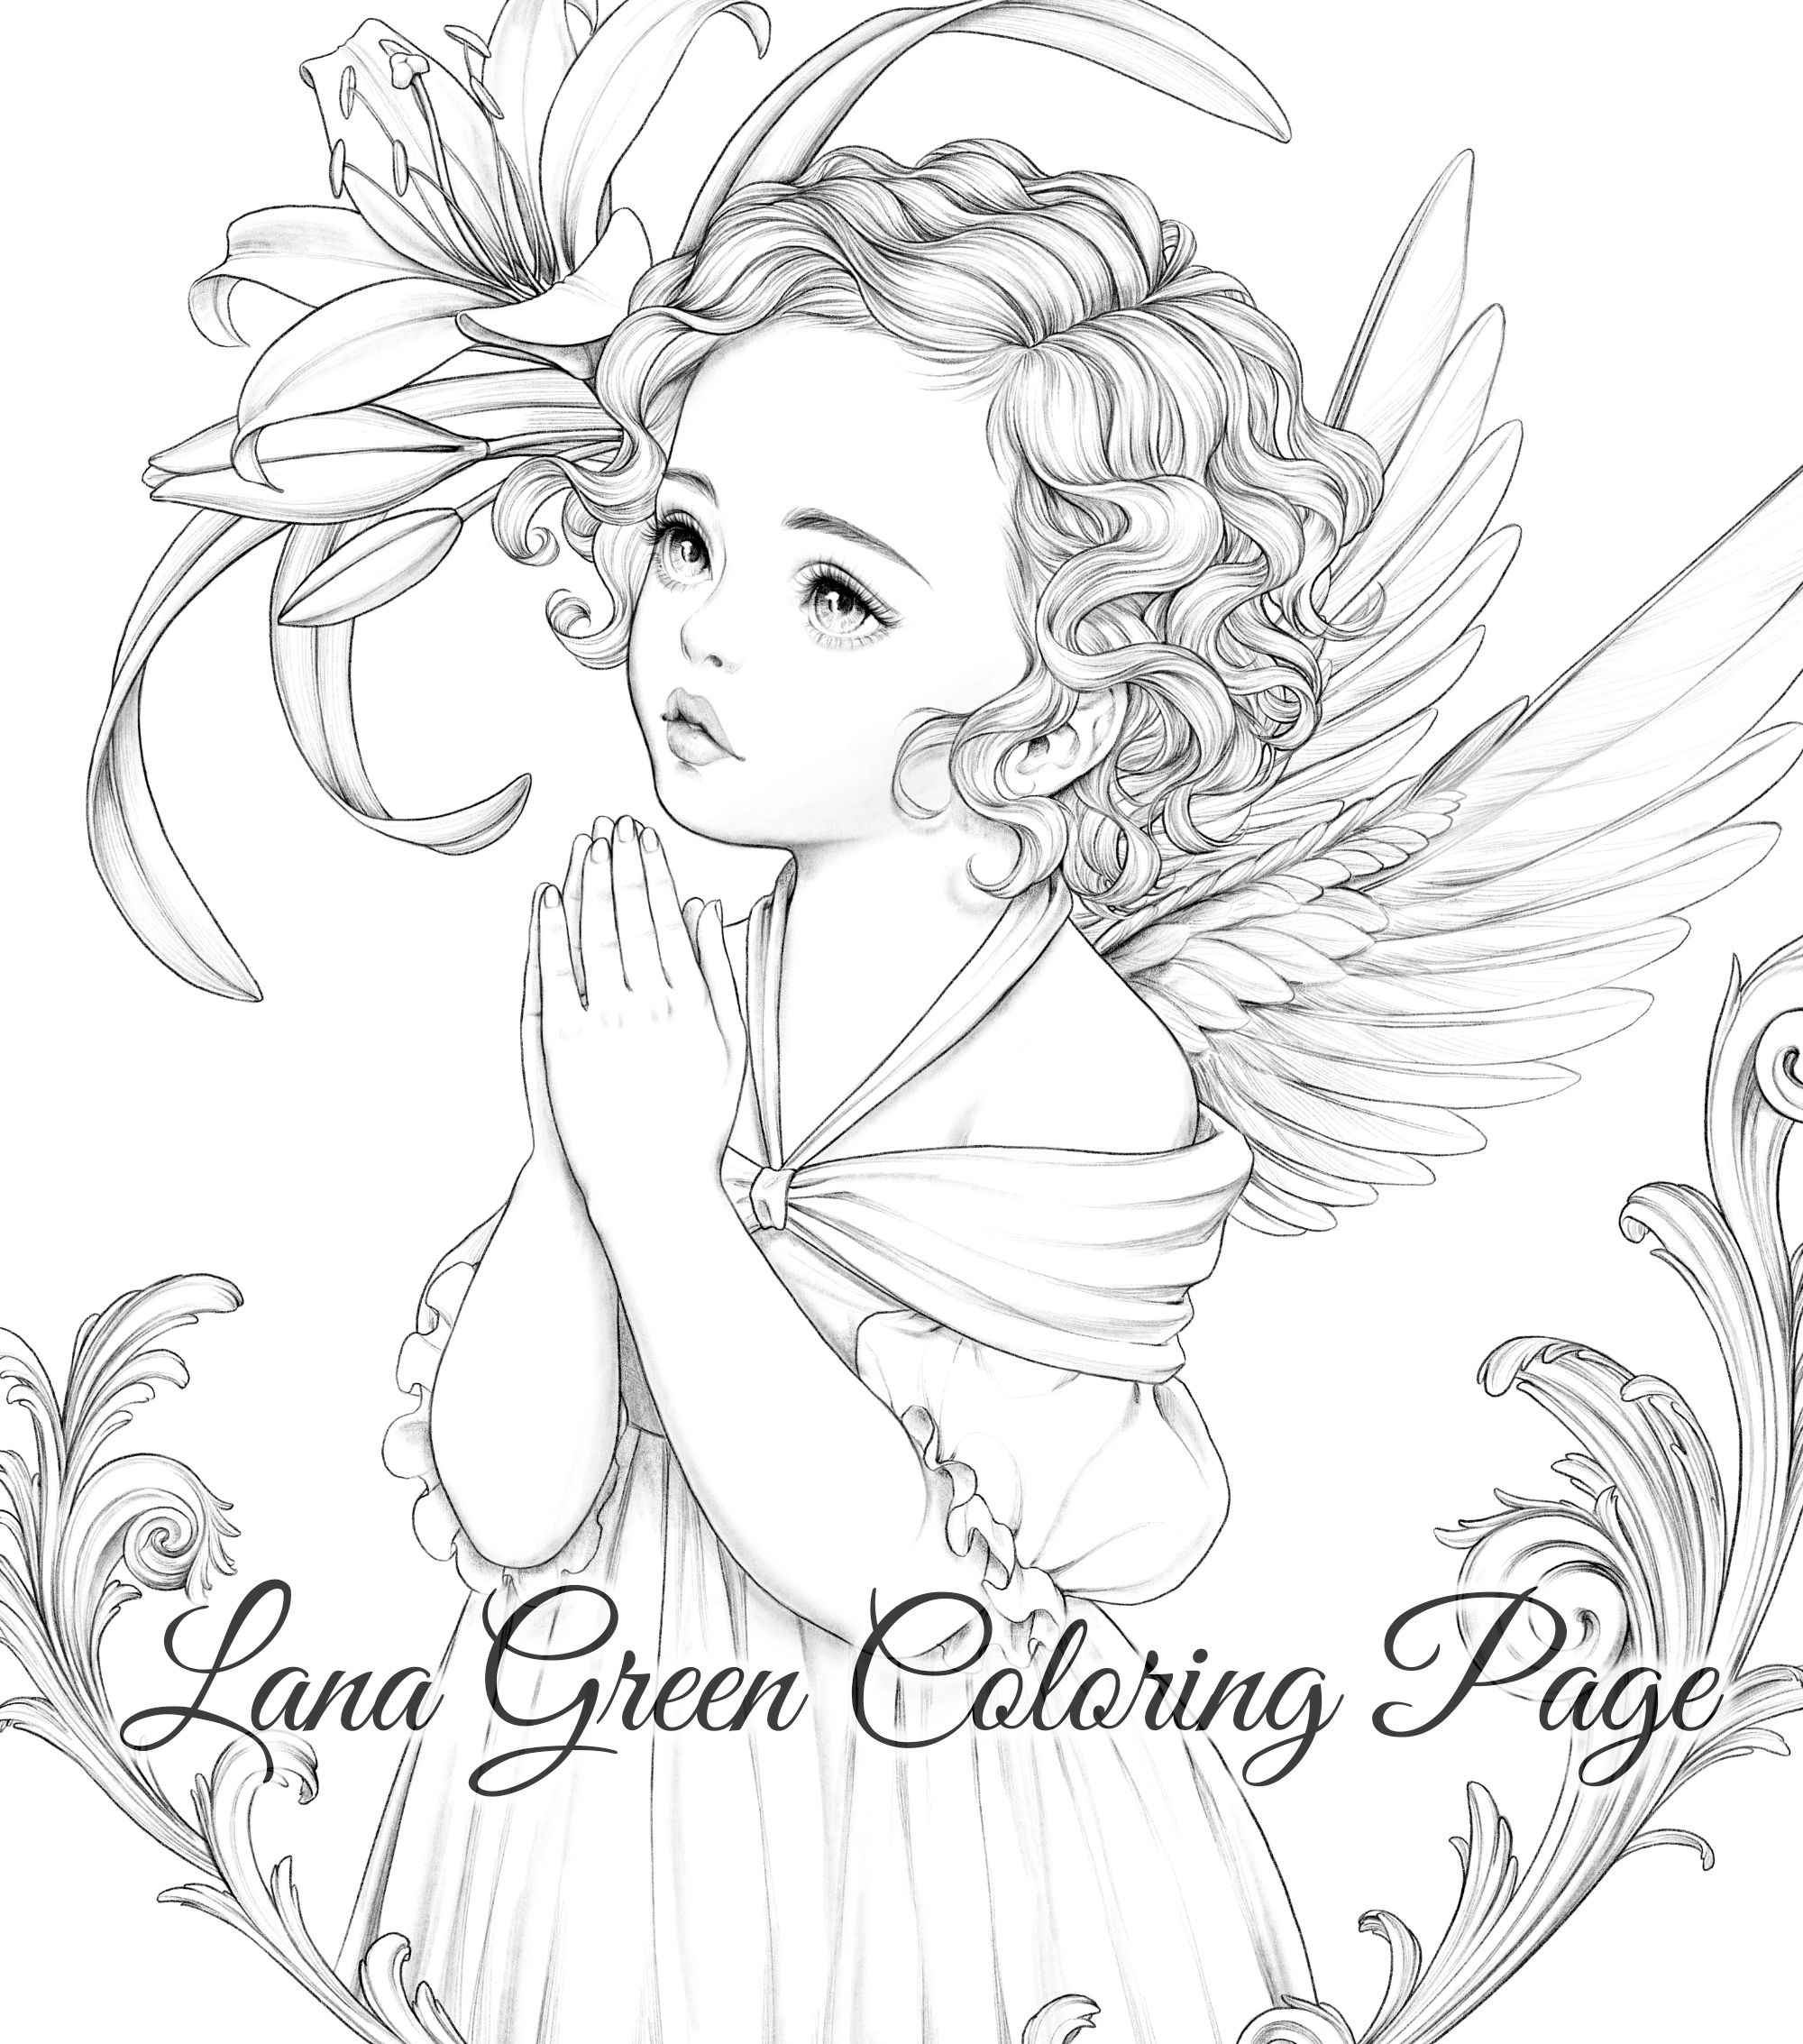 Baby Angel Coloring Page For Adults Grayscale Coloring Etsy In 2021 Angel Coloring Pages Angel Coloring Page Grayscale Coloring